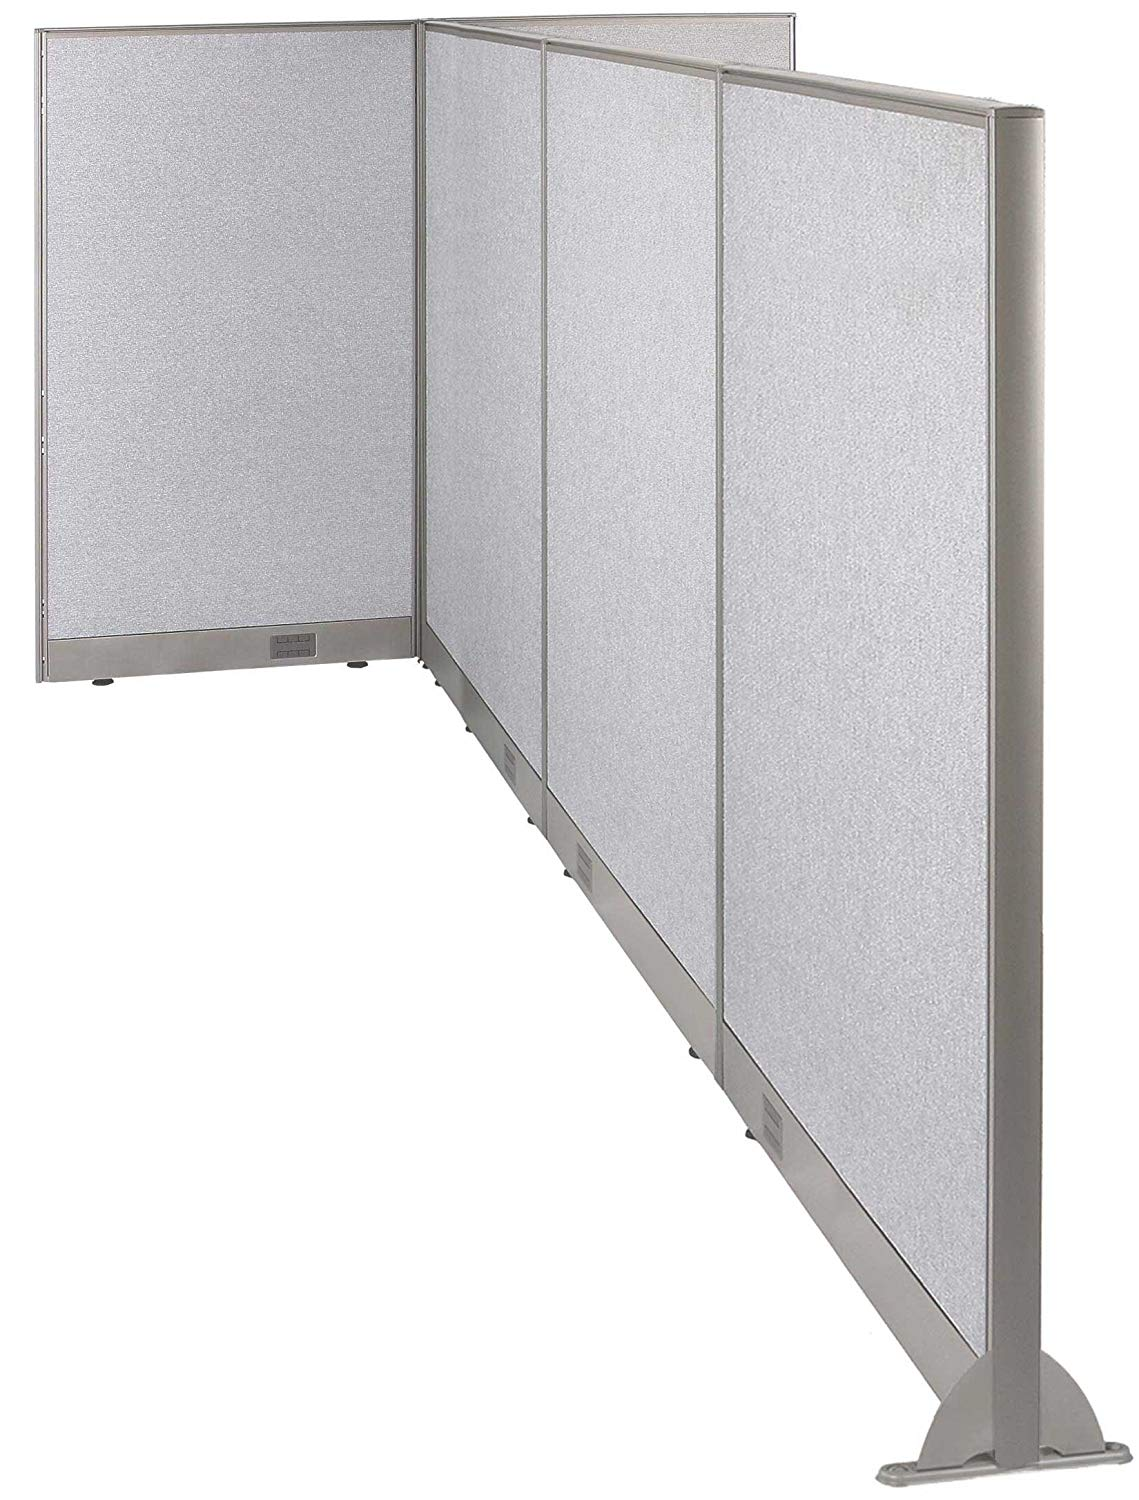 GOF T-Shaped Freestanding Partition 120d x 60w x 48h/ Office, Room Divider … (120d x 60w x 60h)